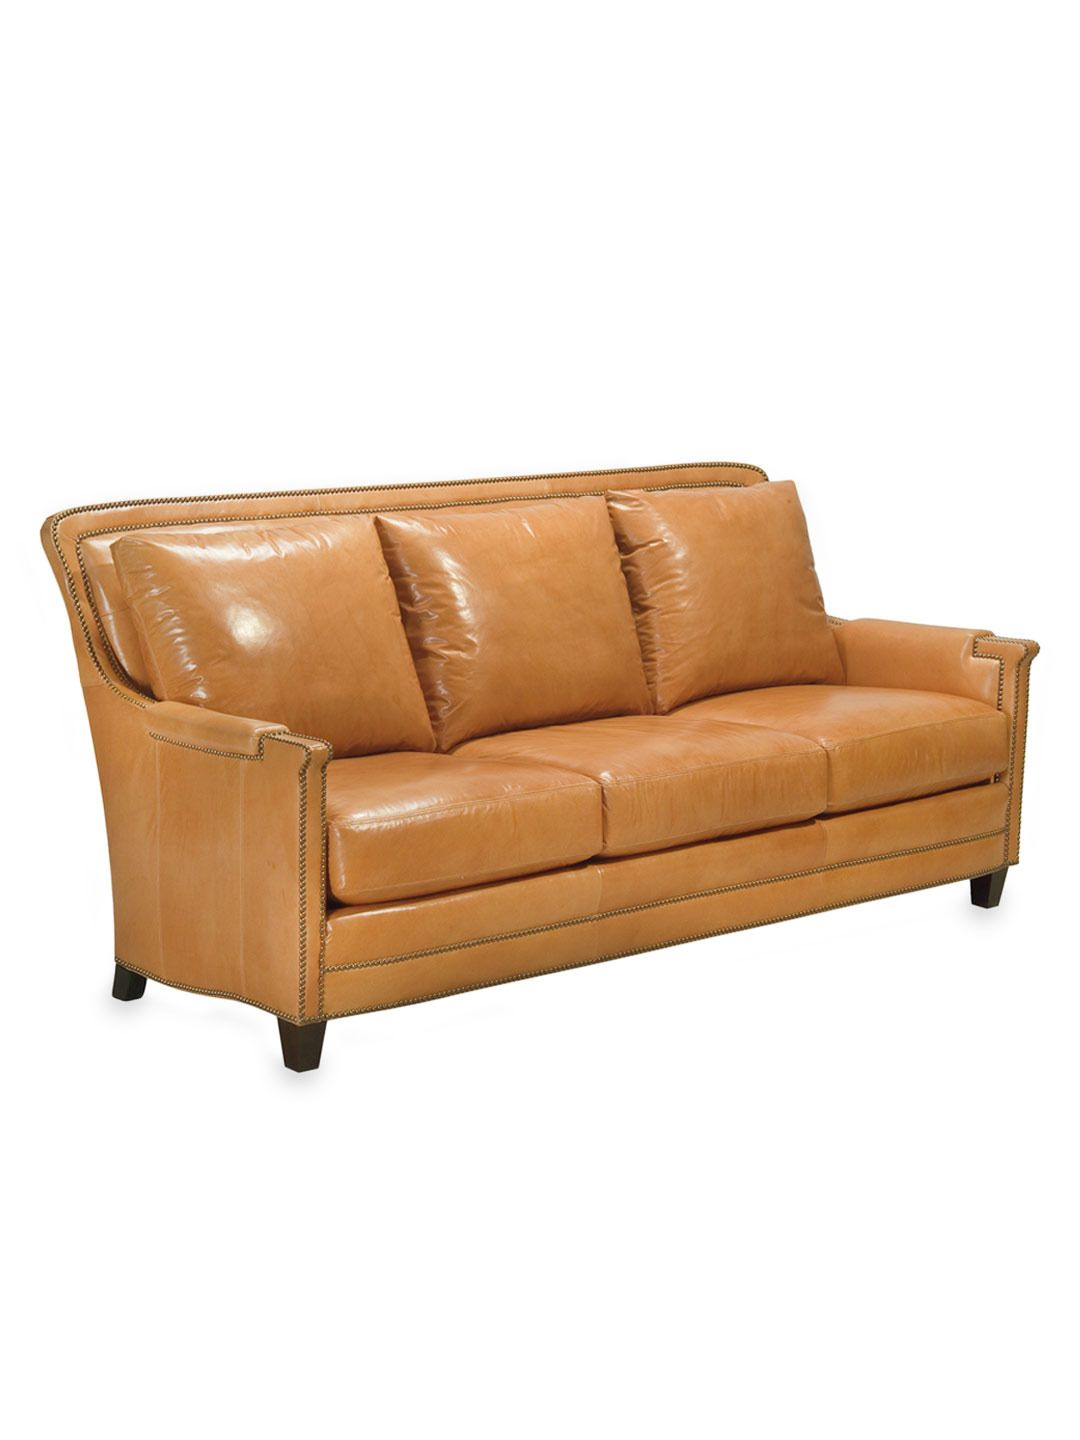 Ferguson Copeland Redonda Tan Leather Sofa 1995